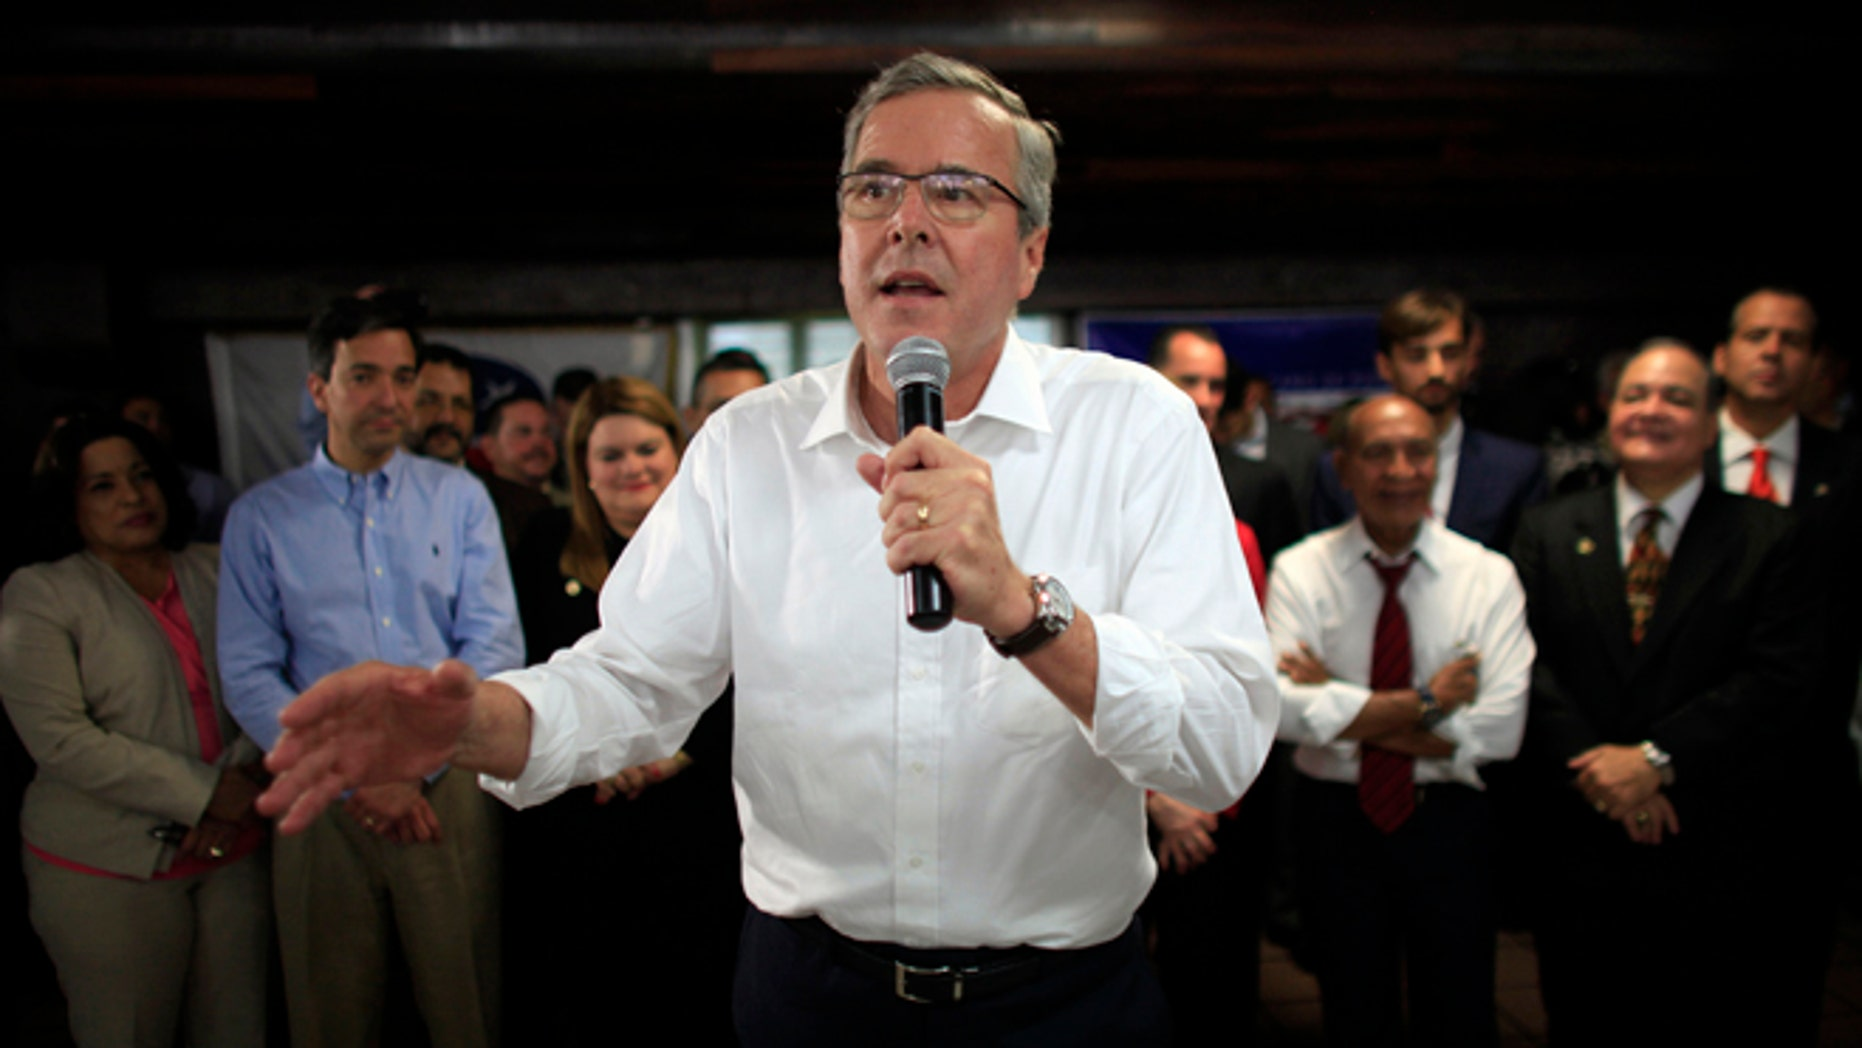 FILE - In this April 28, 2015 file photo, former Florida Gov. Jeb Bush speaks during a town hall meeting with Puerto Rico's Republican Party in Bayamon, Puerto Rico. Bush on Wednesday declared that 11 million immigrants in the country illegally should have an opportunity to stay, wading into the explosive immigration debate for the second time in two days while courting Hispanic voters. (AP Photo/Ricardo Arduengo, File)